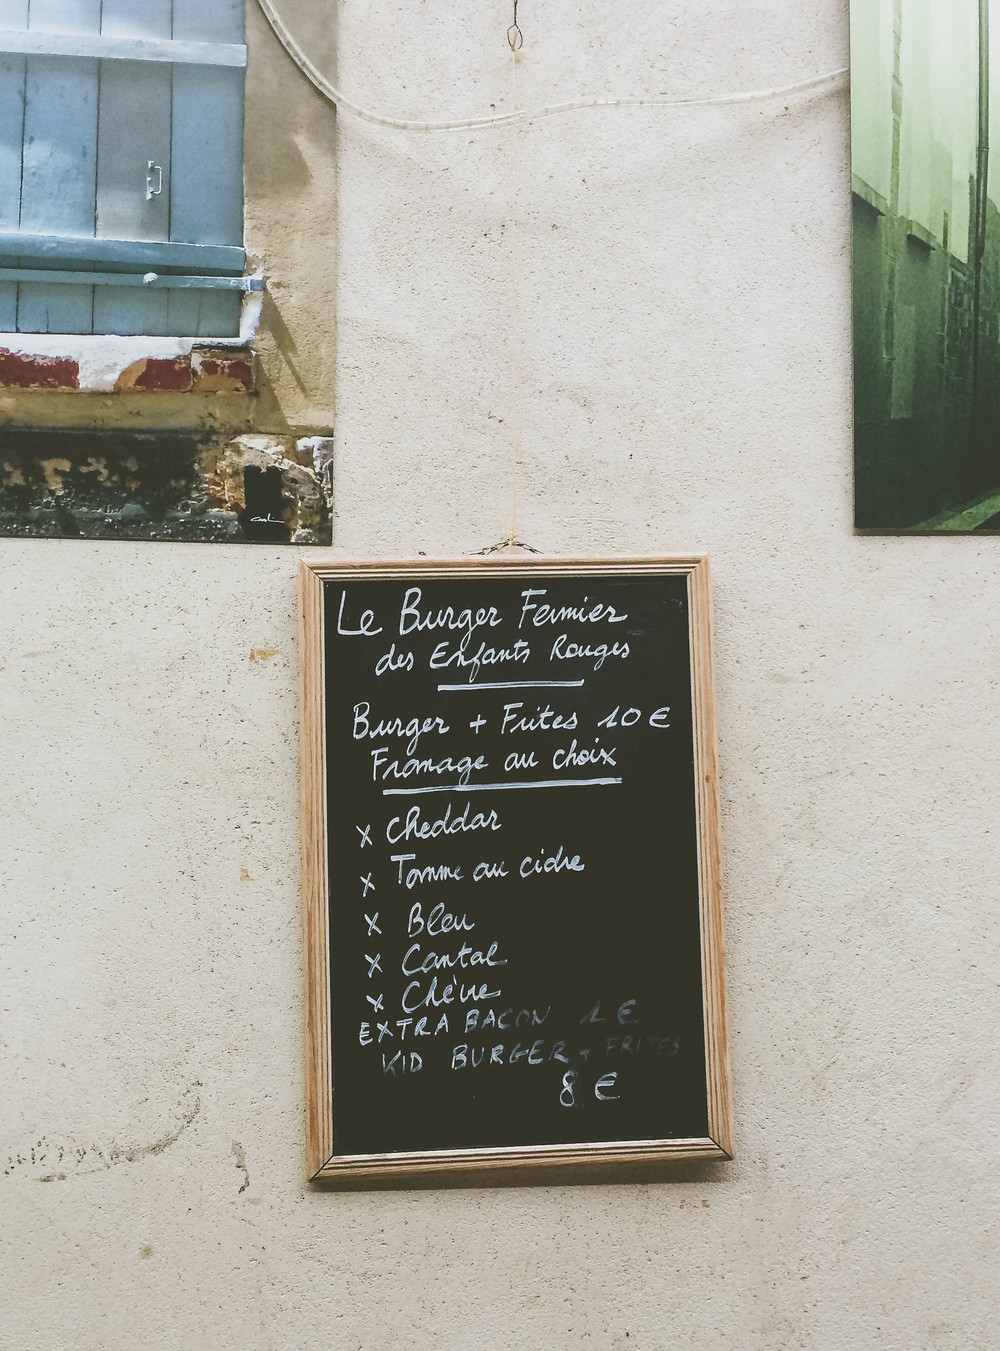 A sign for a small burger joint at the Marché des Enfants Rouge.